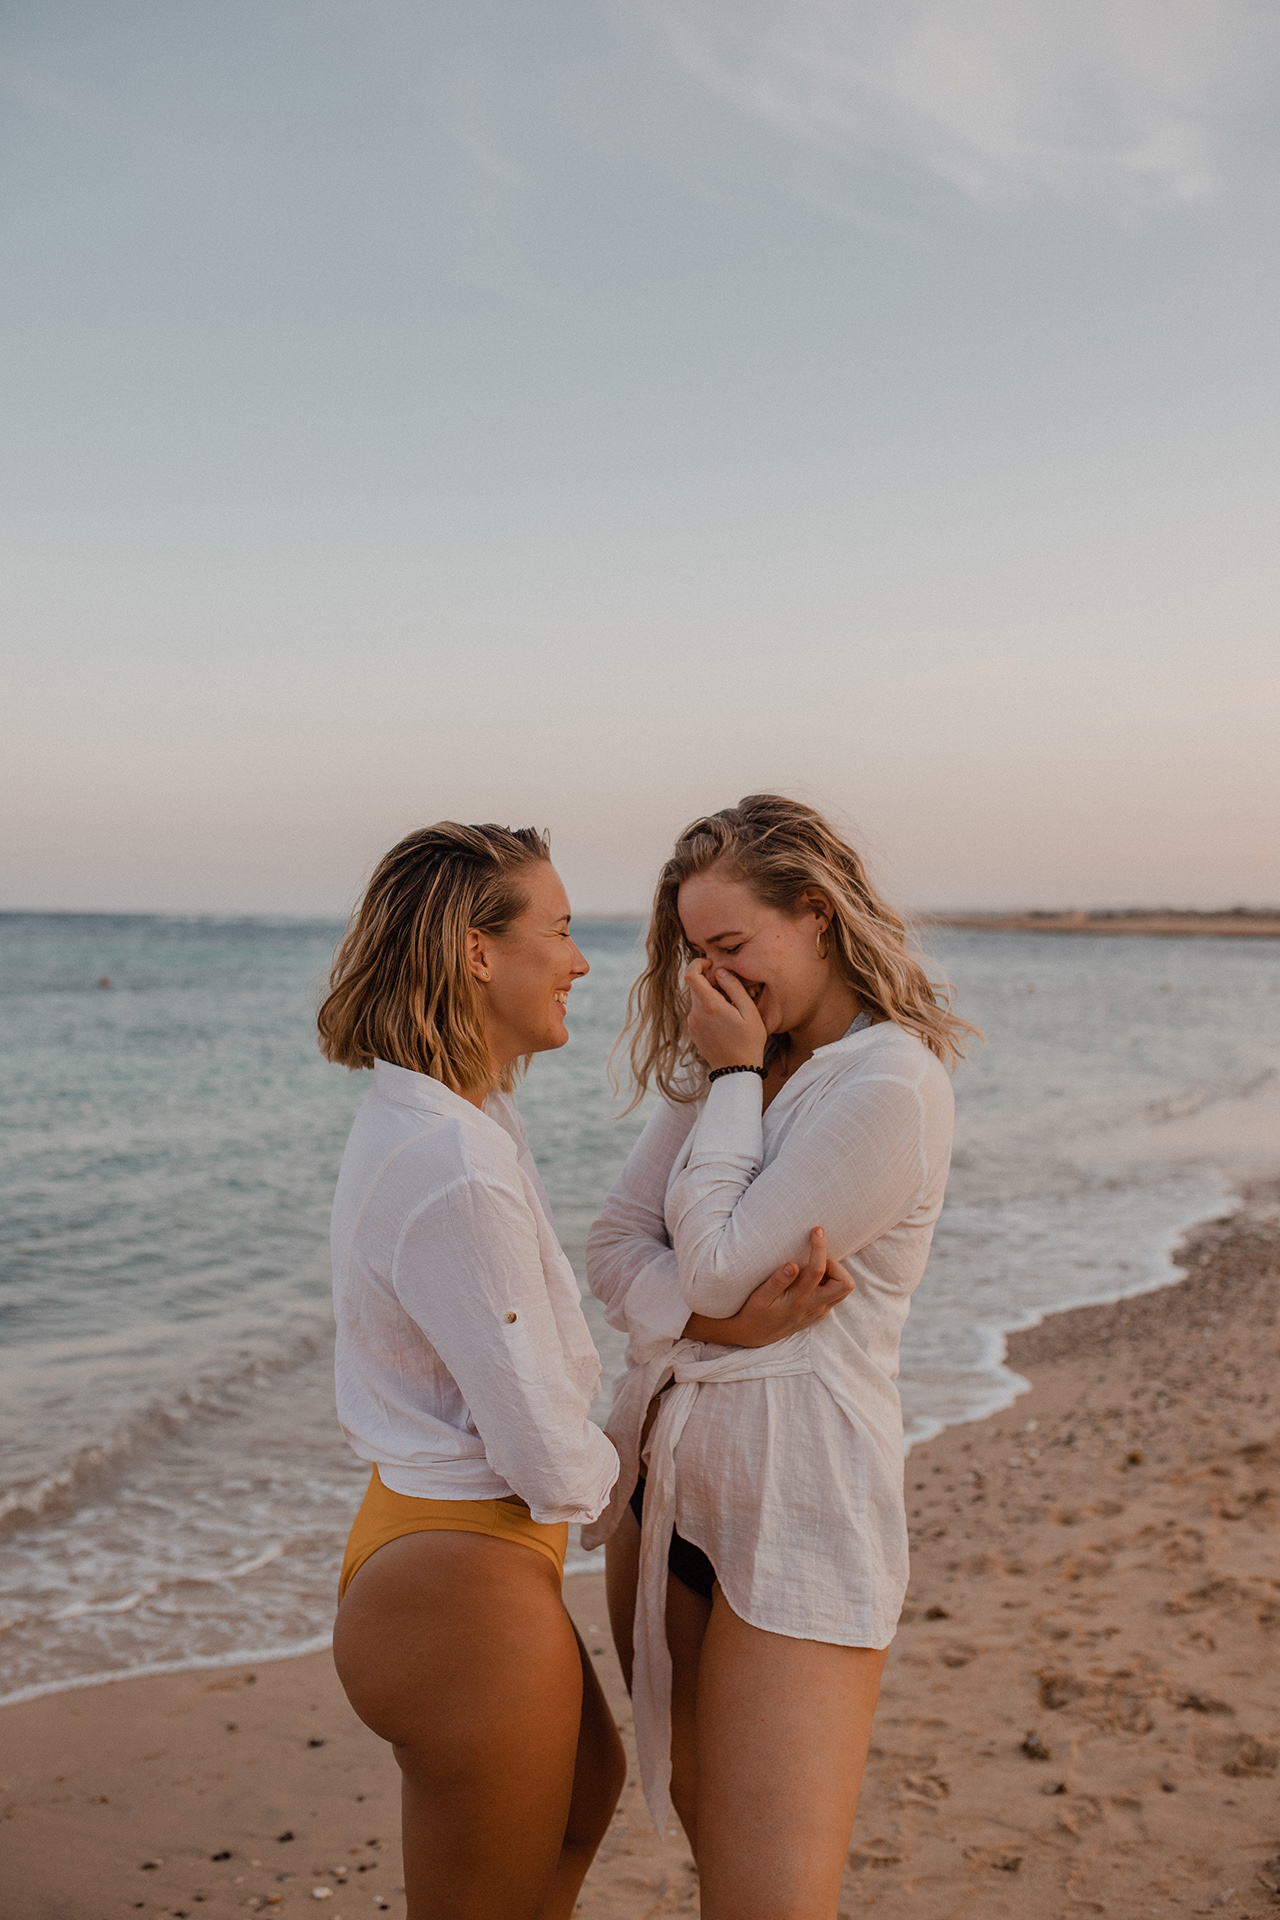 Blogger Kerstin (kerstinloves) and Sarah Witpeerd in Marsa Alam, Egypt